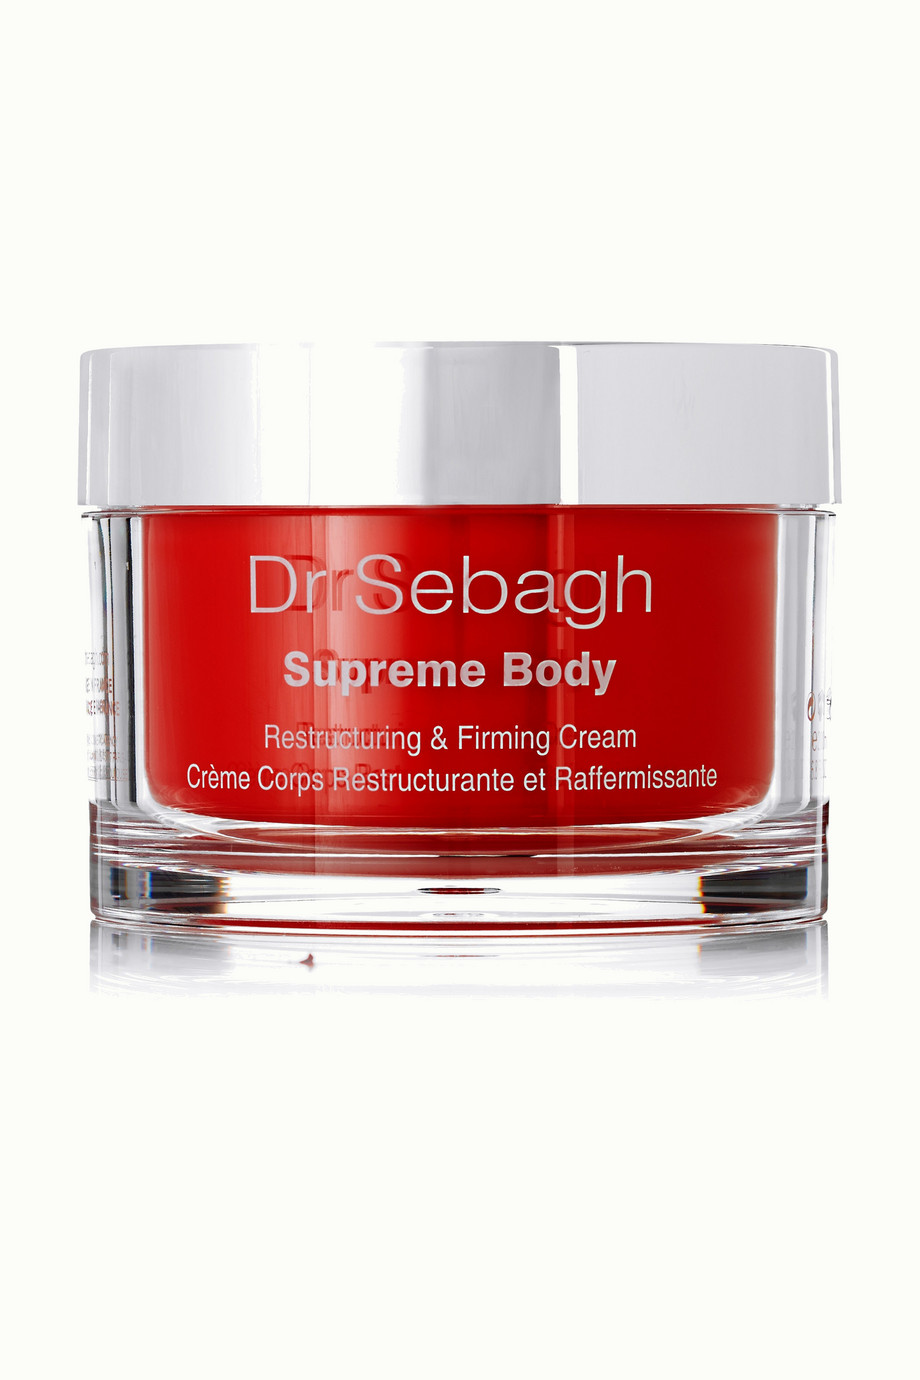 Supreme Body Restructuring & Firming Cream, 200ml, by Dr Sebagh